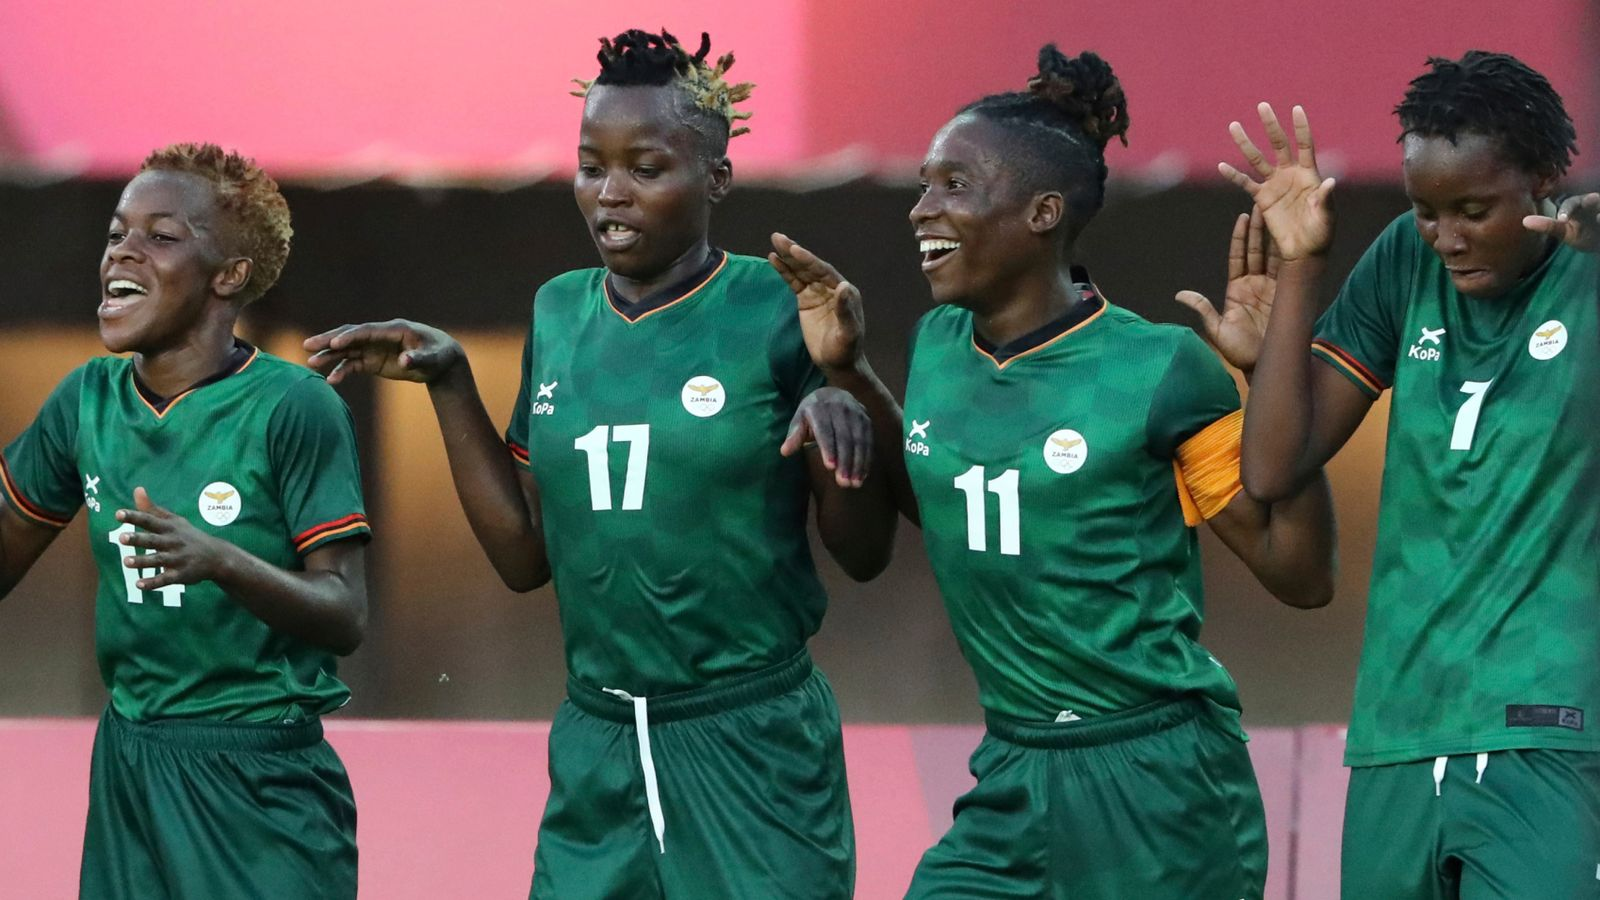 Zambia's Barbra Banda nets another hat-trick in Tokyo 2020 thriller against China - Women's Olympic football round-up